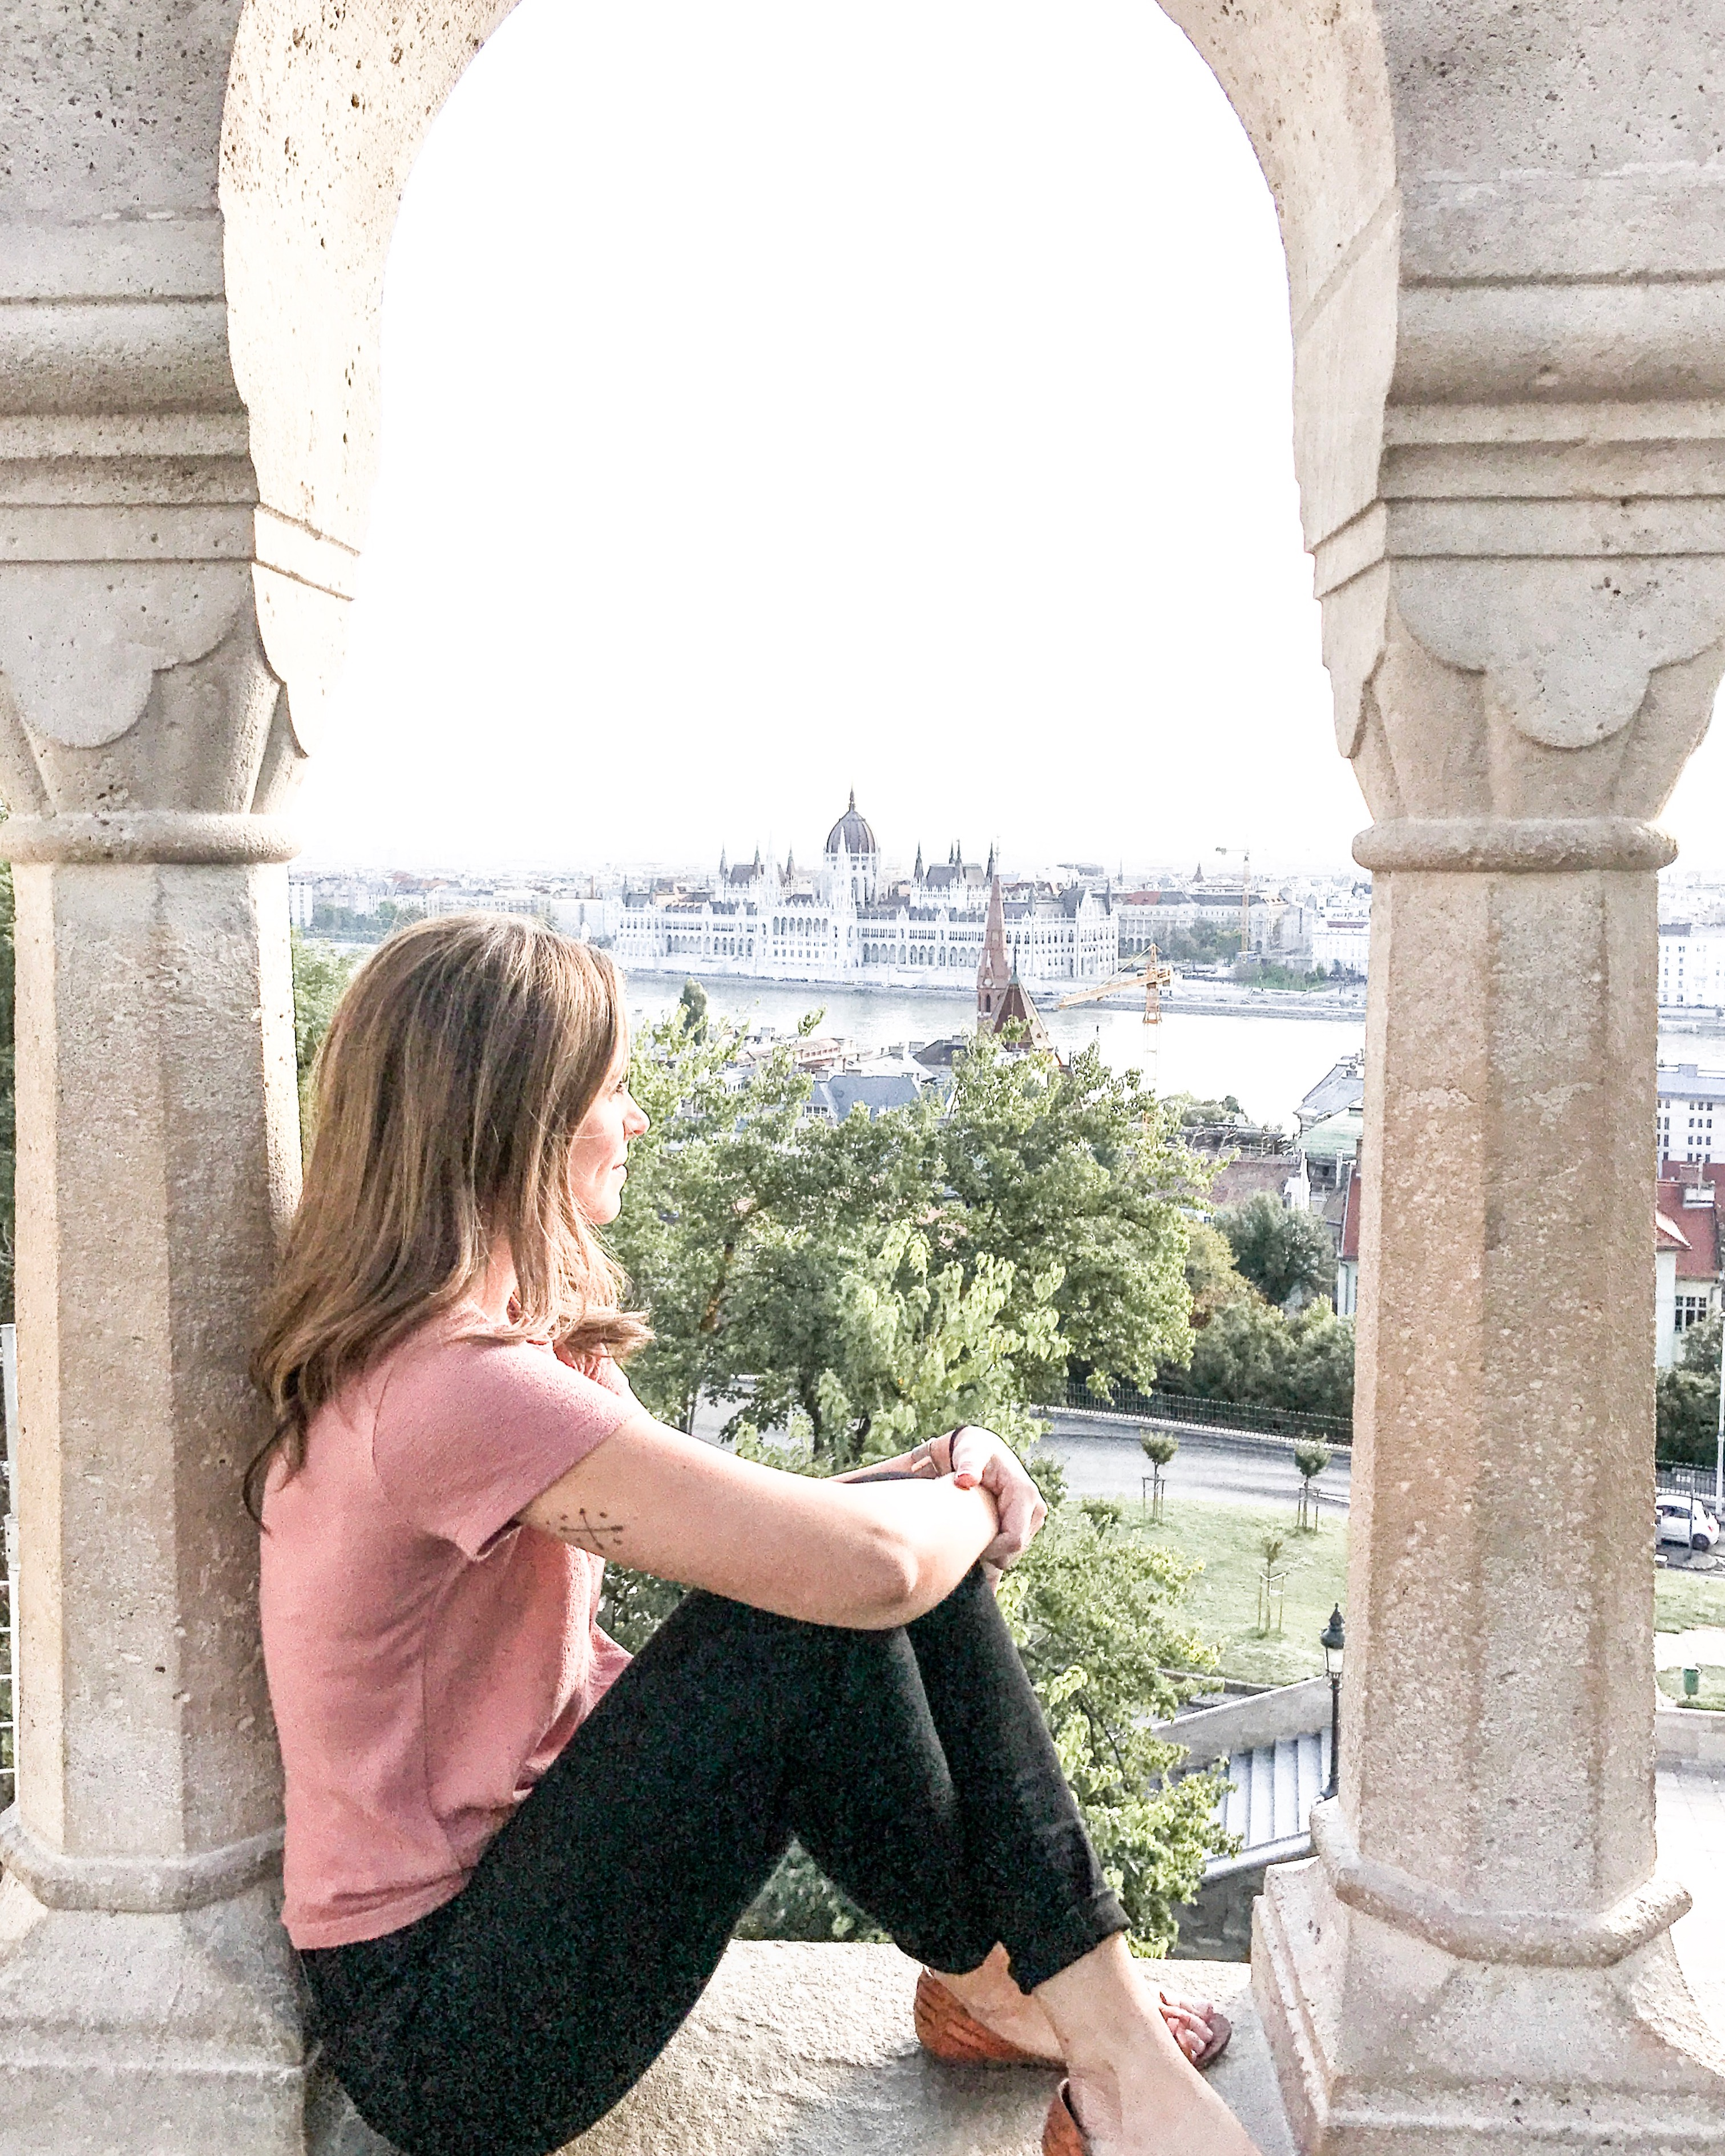 5 Lessons Learned On My First Solo Trip